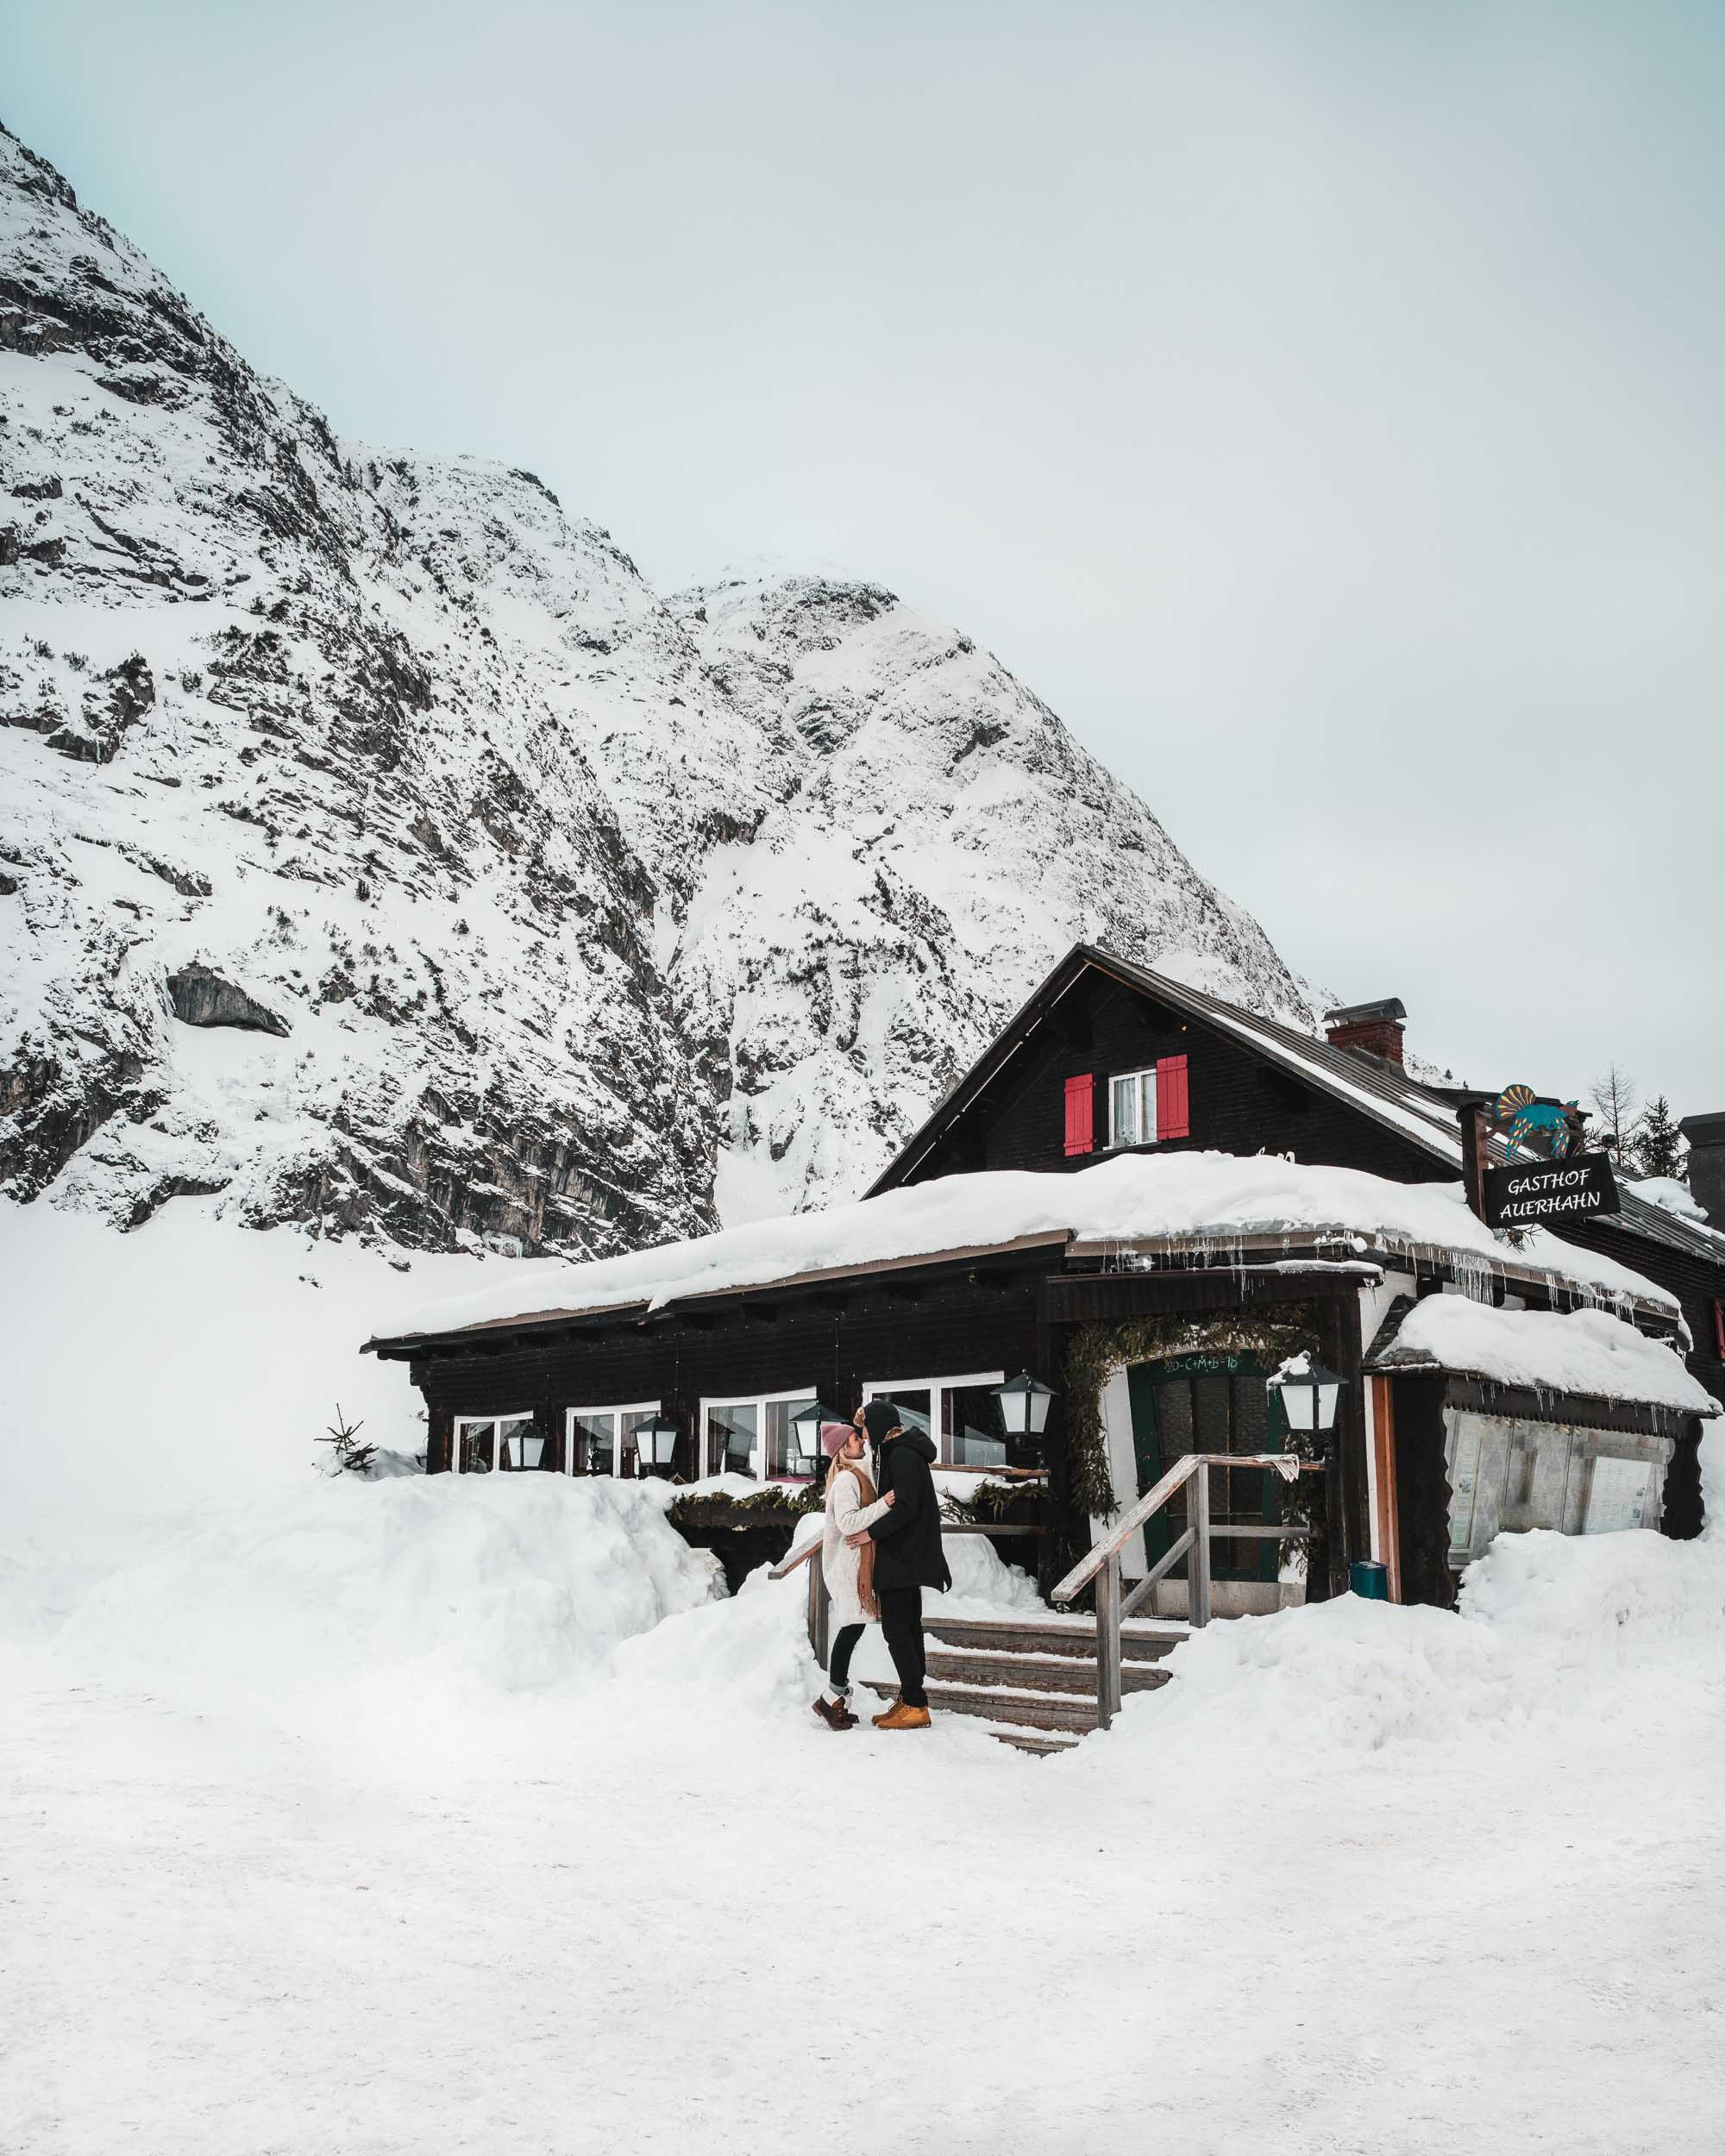 Travel Bloggers Selena Taylor and Jacob Taylor of Find Us Lost in Lech Austria Ski Town